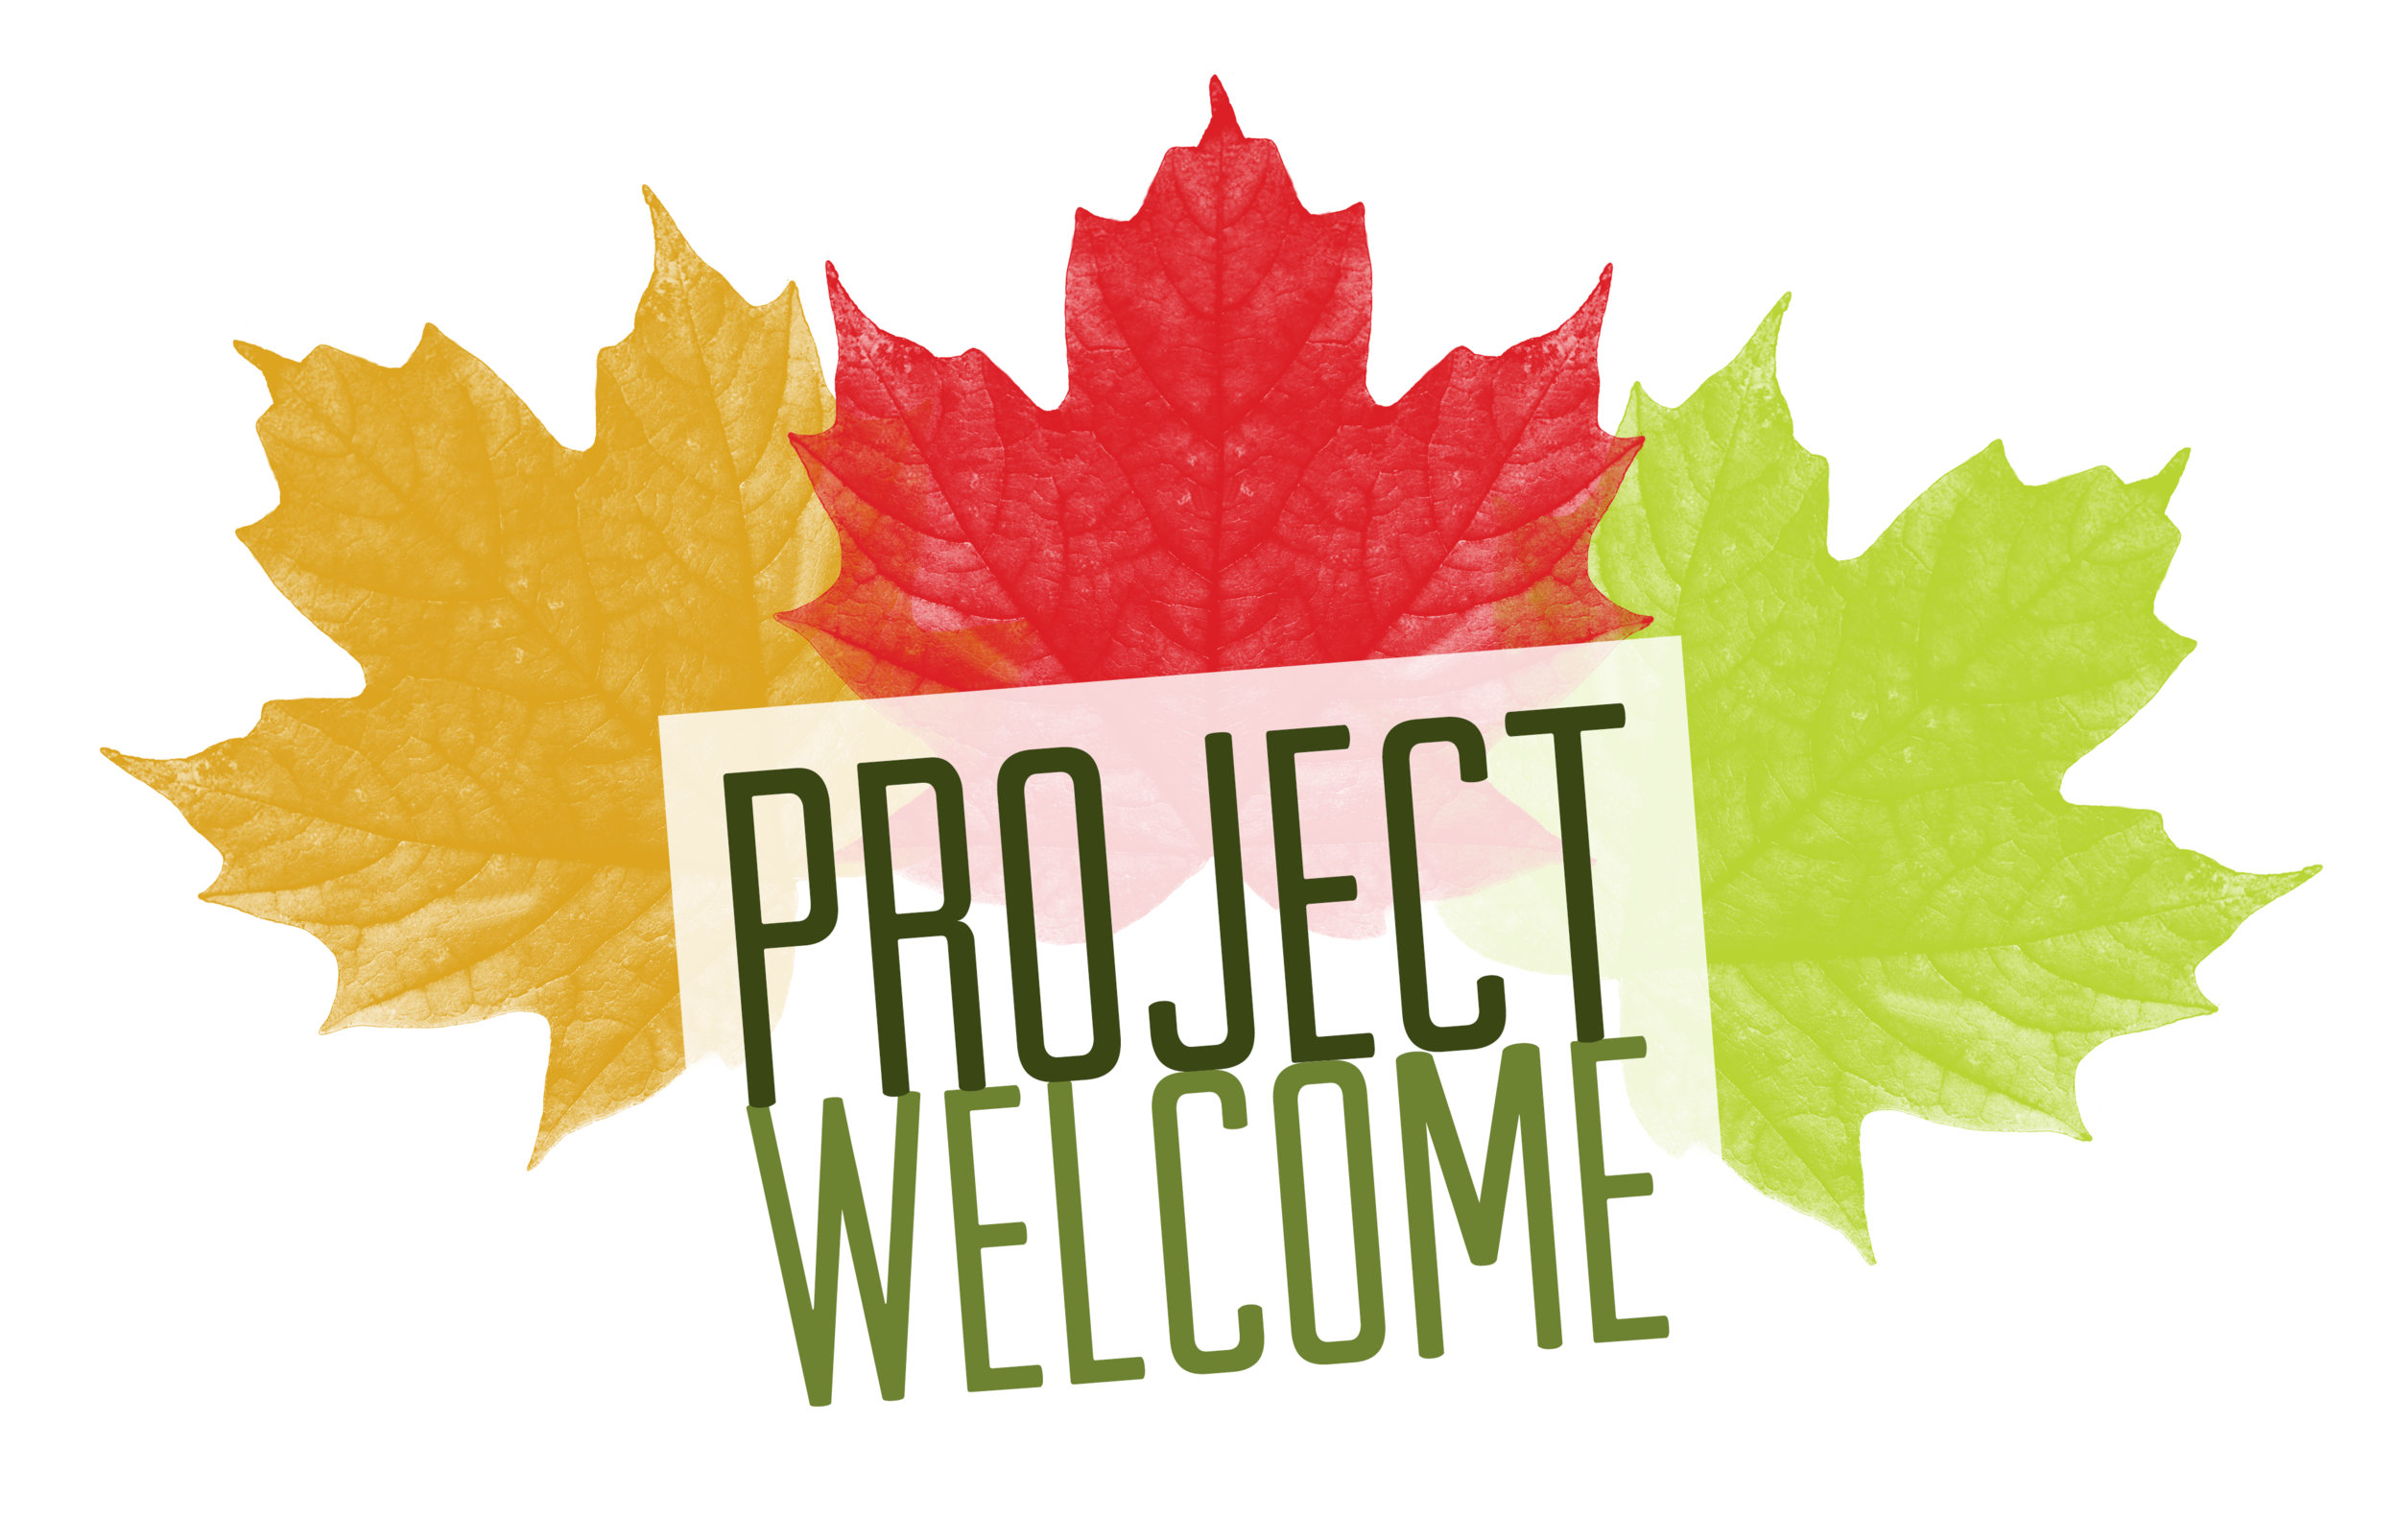 Project Welcome Catering is a non profit catering business solely owned and operated by students.